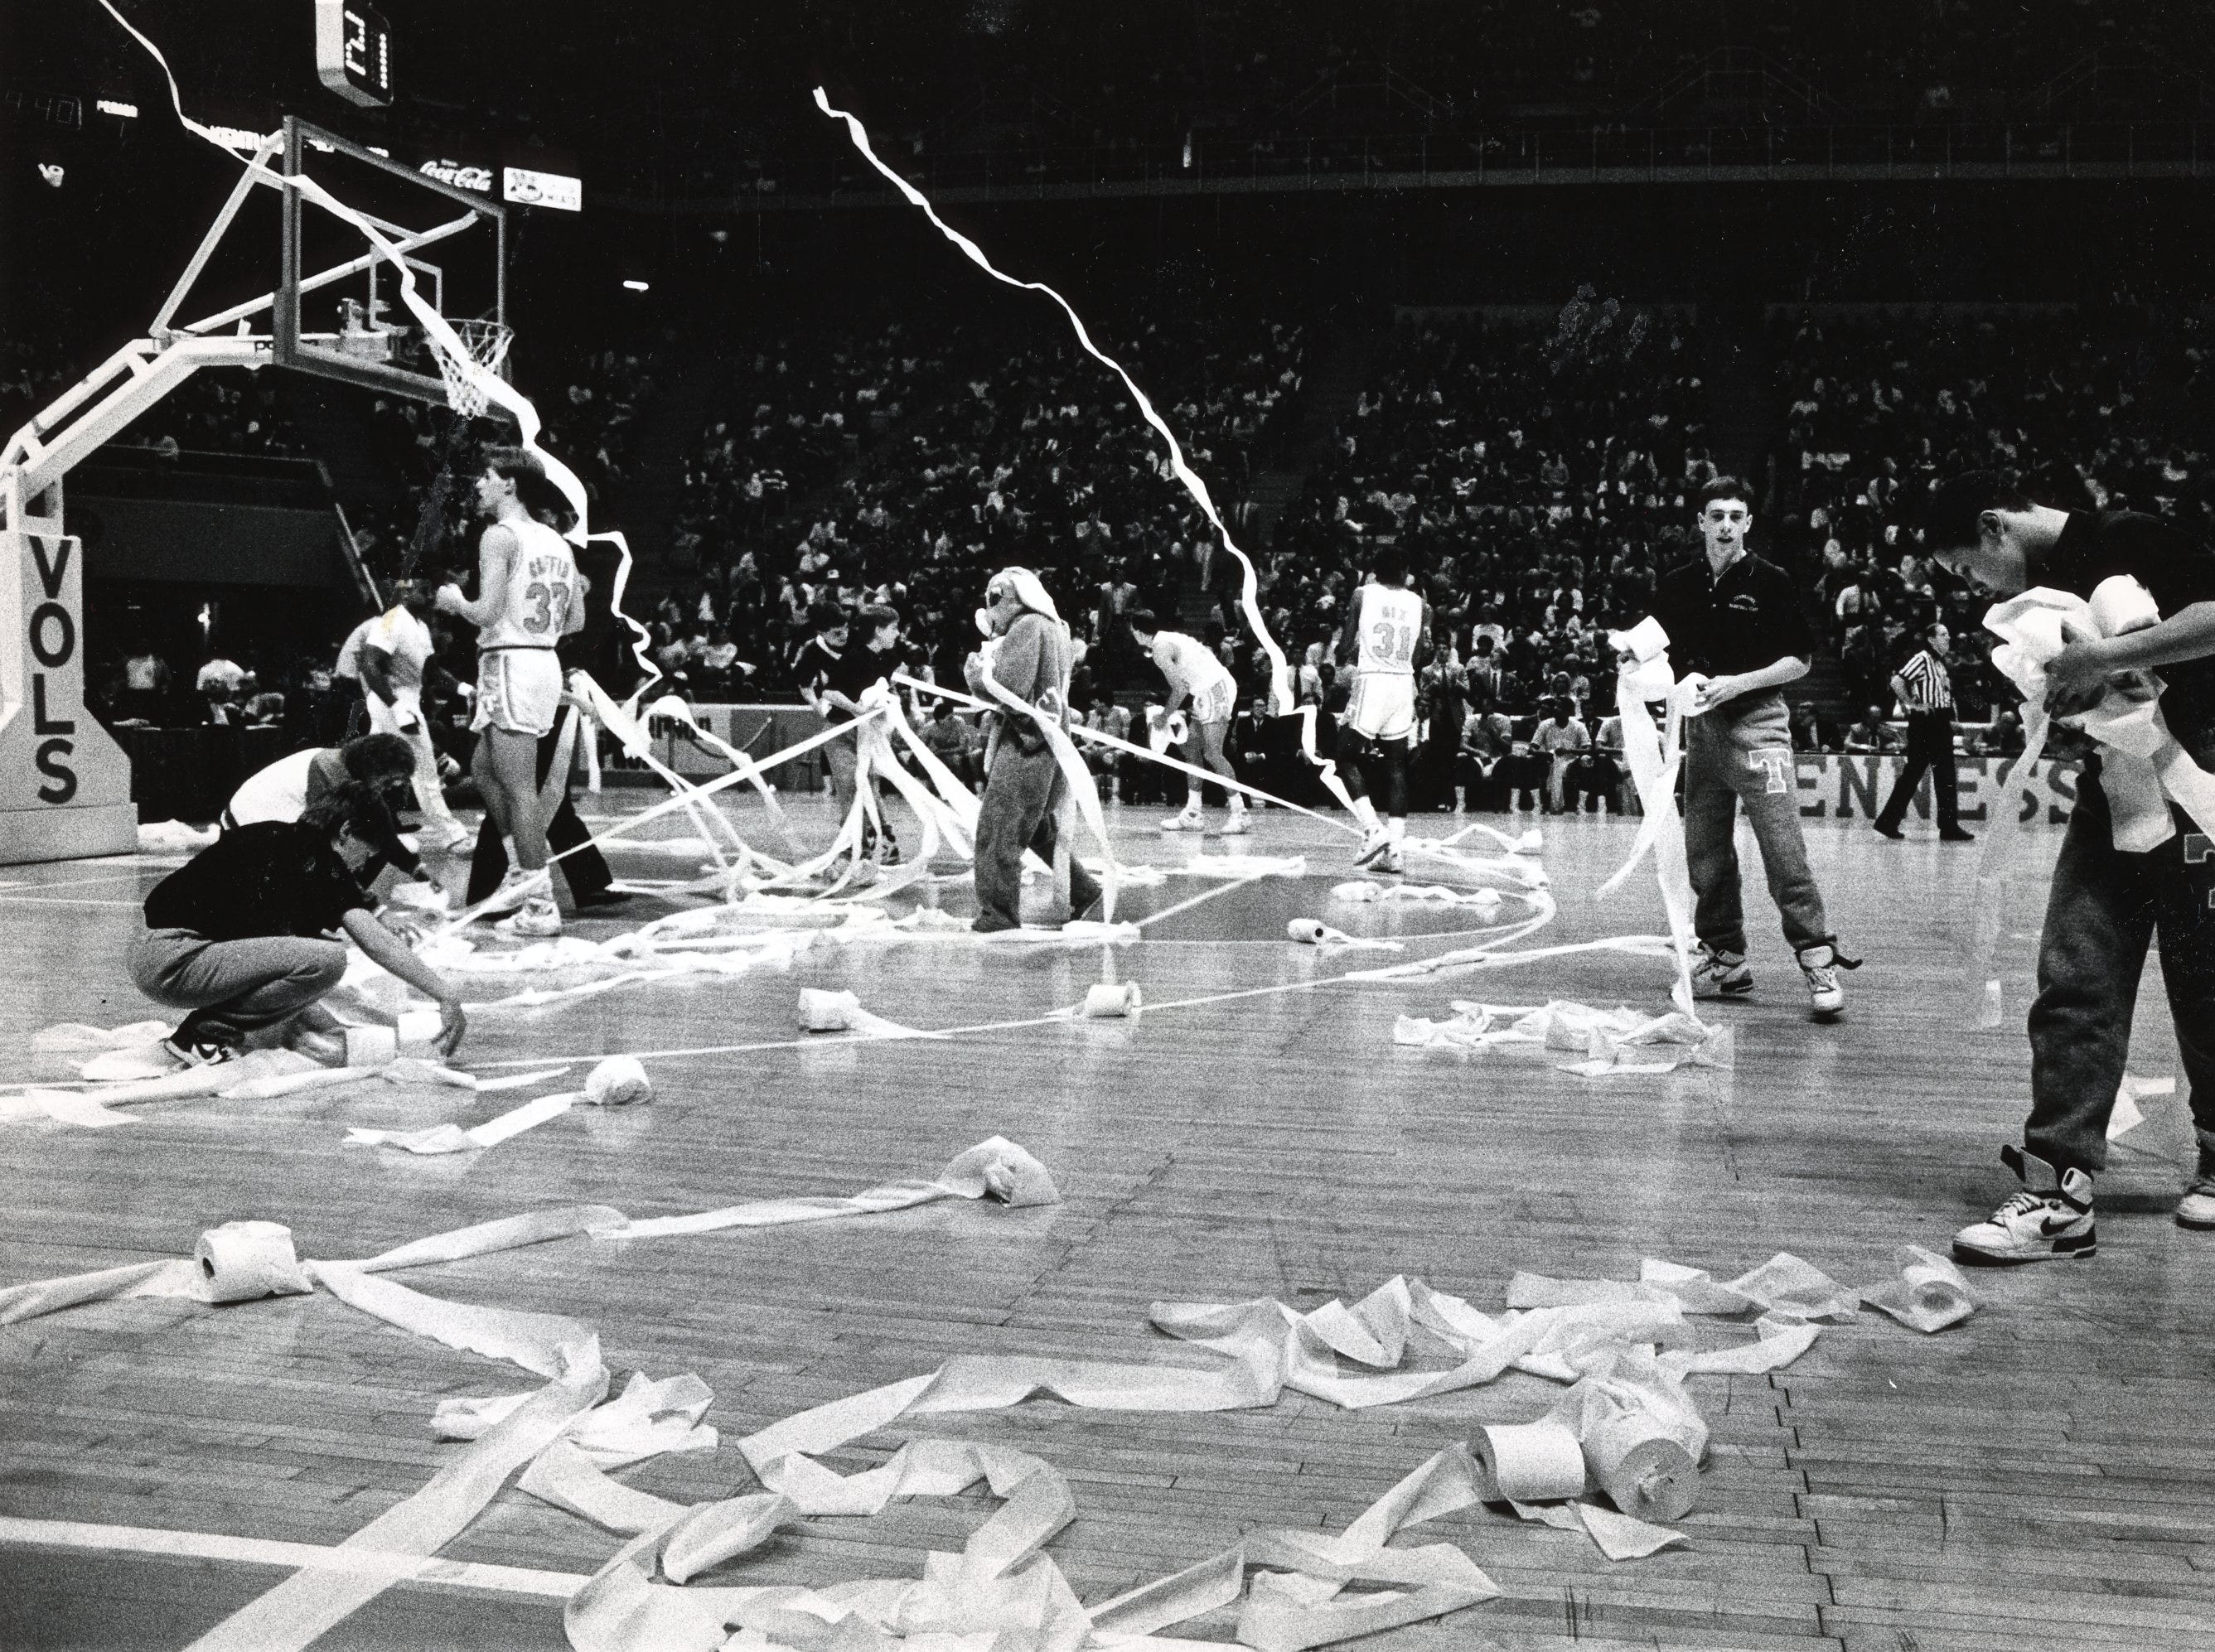 Toilet paper covers the court during the Tennessee vs. Kentucky game in February 1988.